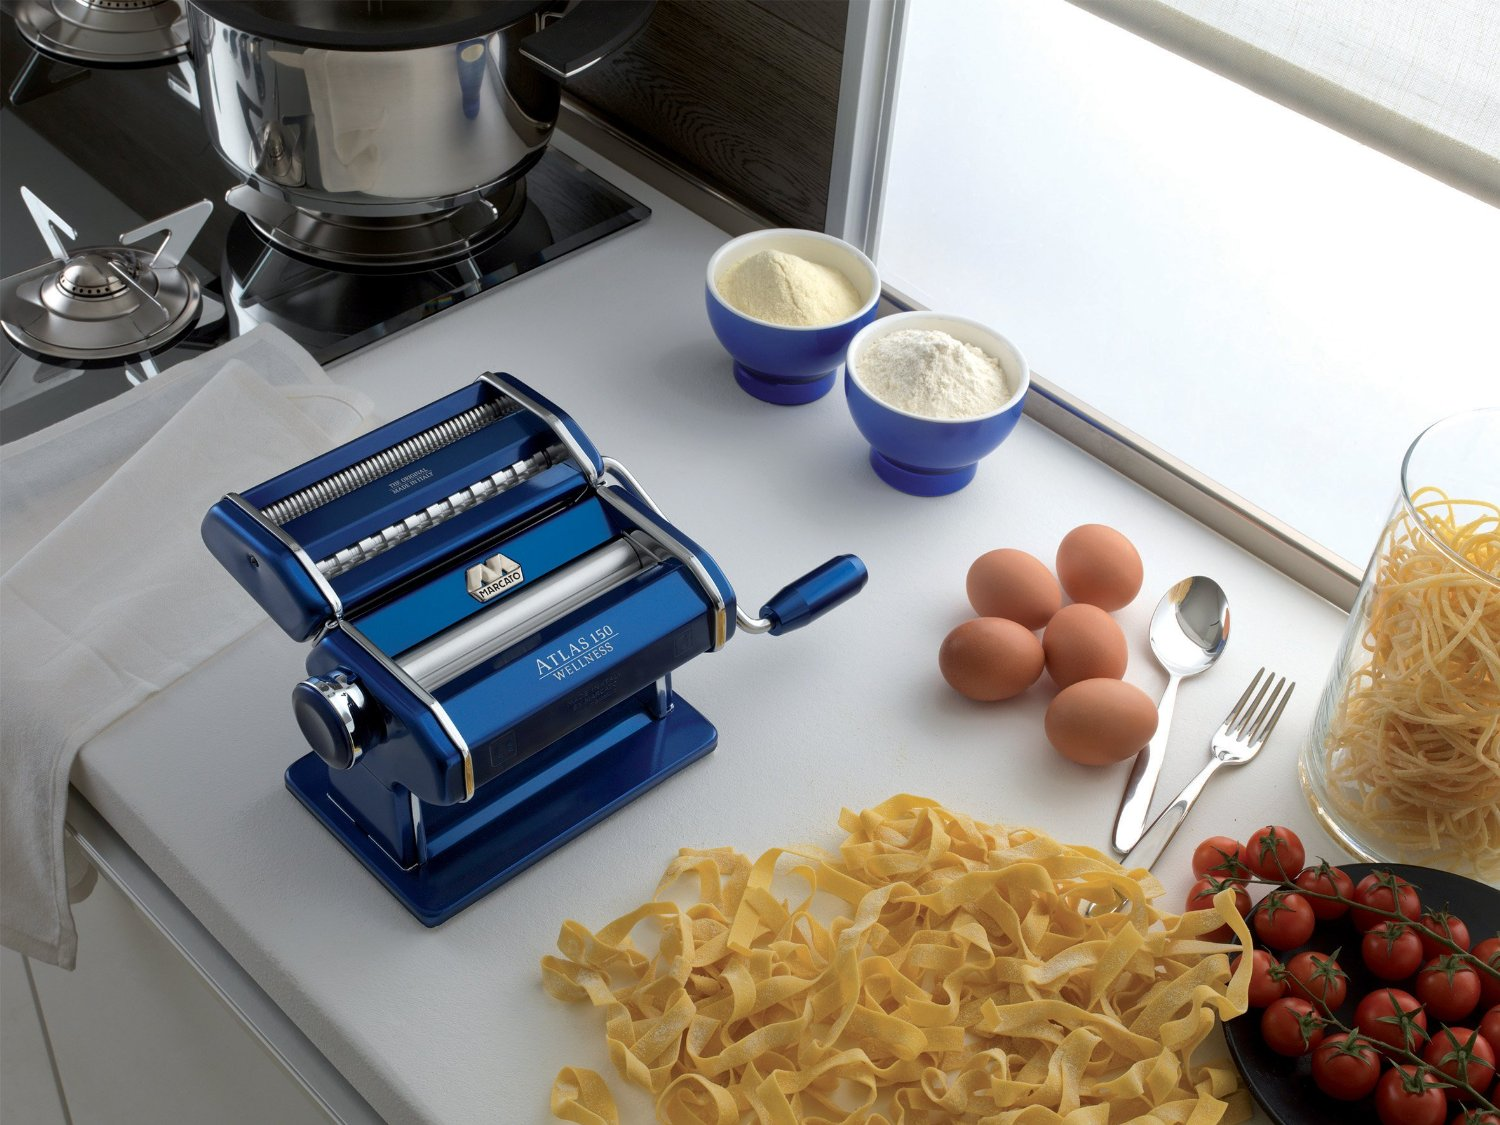 Marcato Atlas 150 Pasta Maker is one of the best pasta gadgets